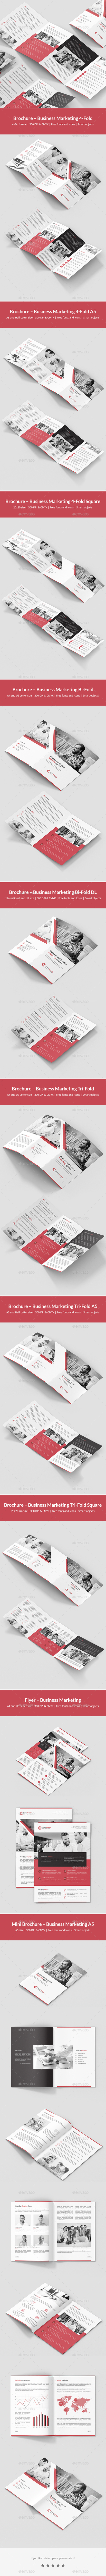 Business Marketing – Brochures Bundle Print Templates 10 in 1 - Corporate Brochures